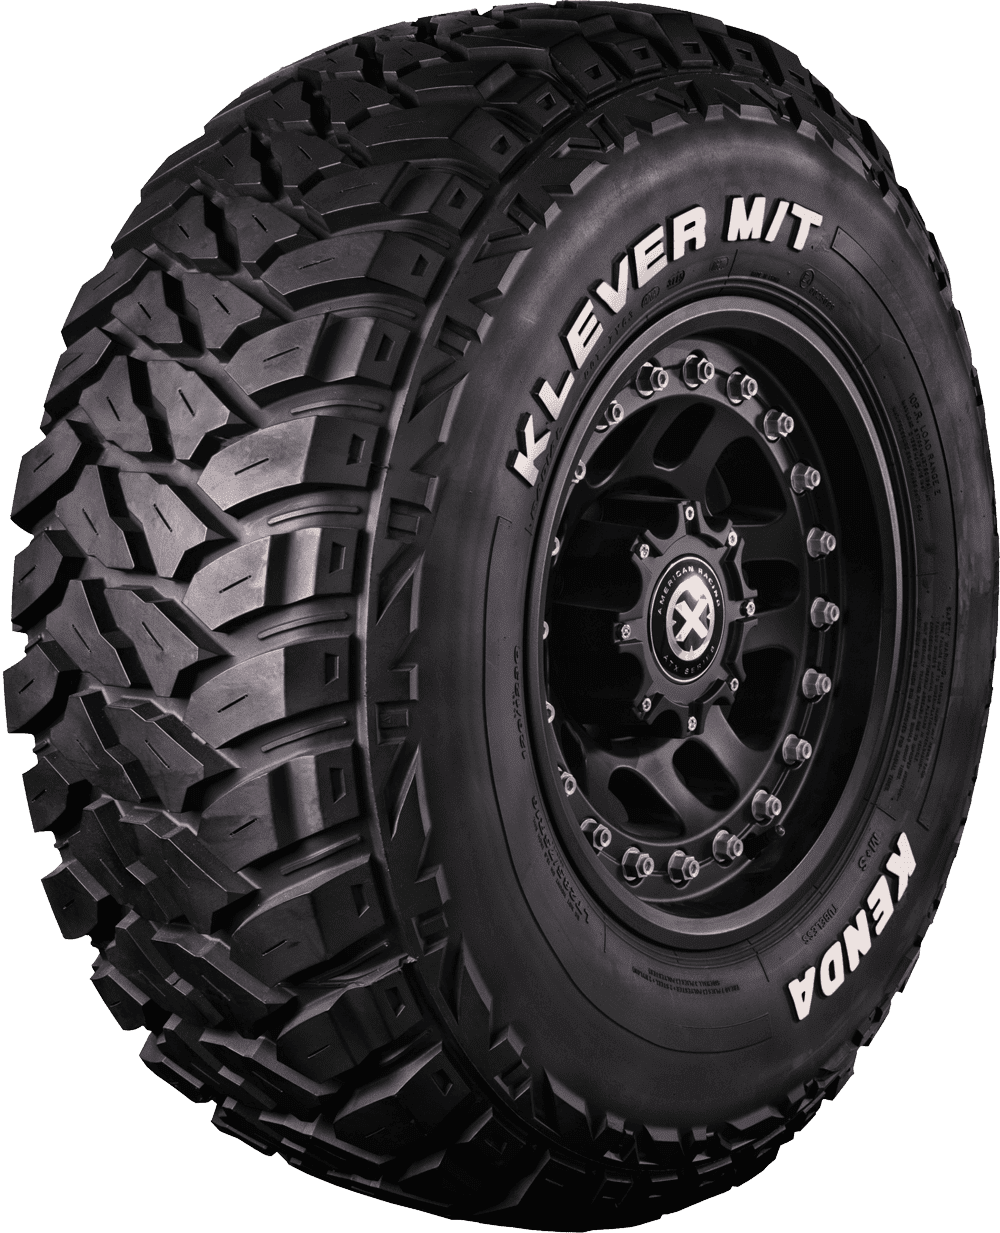 Kenda Klever M/T off-road tire